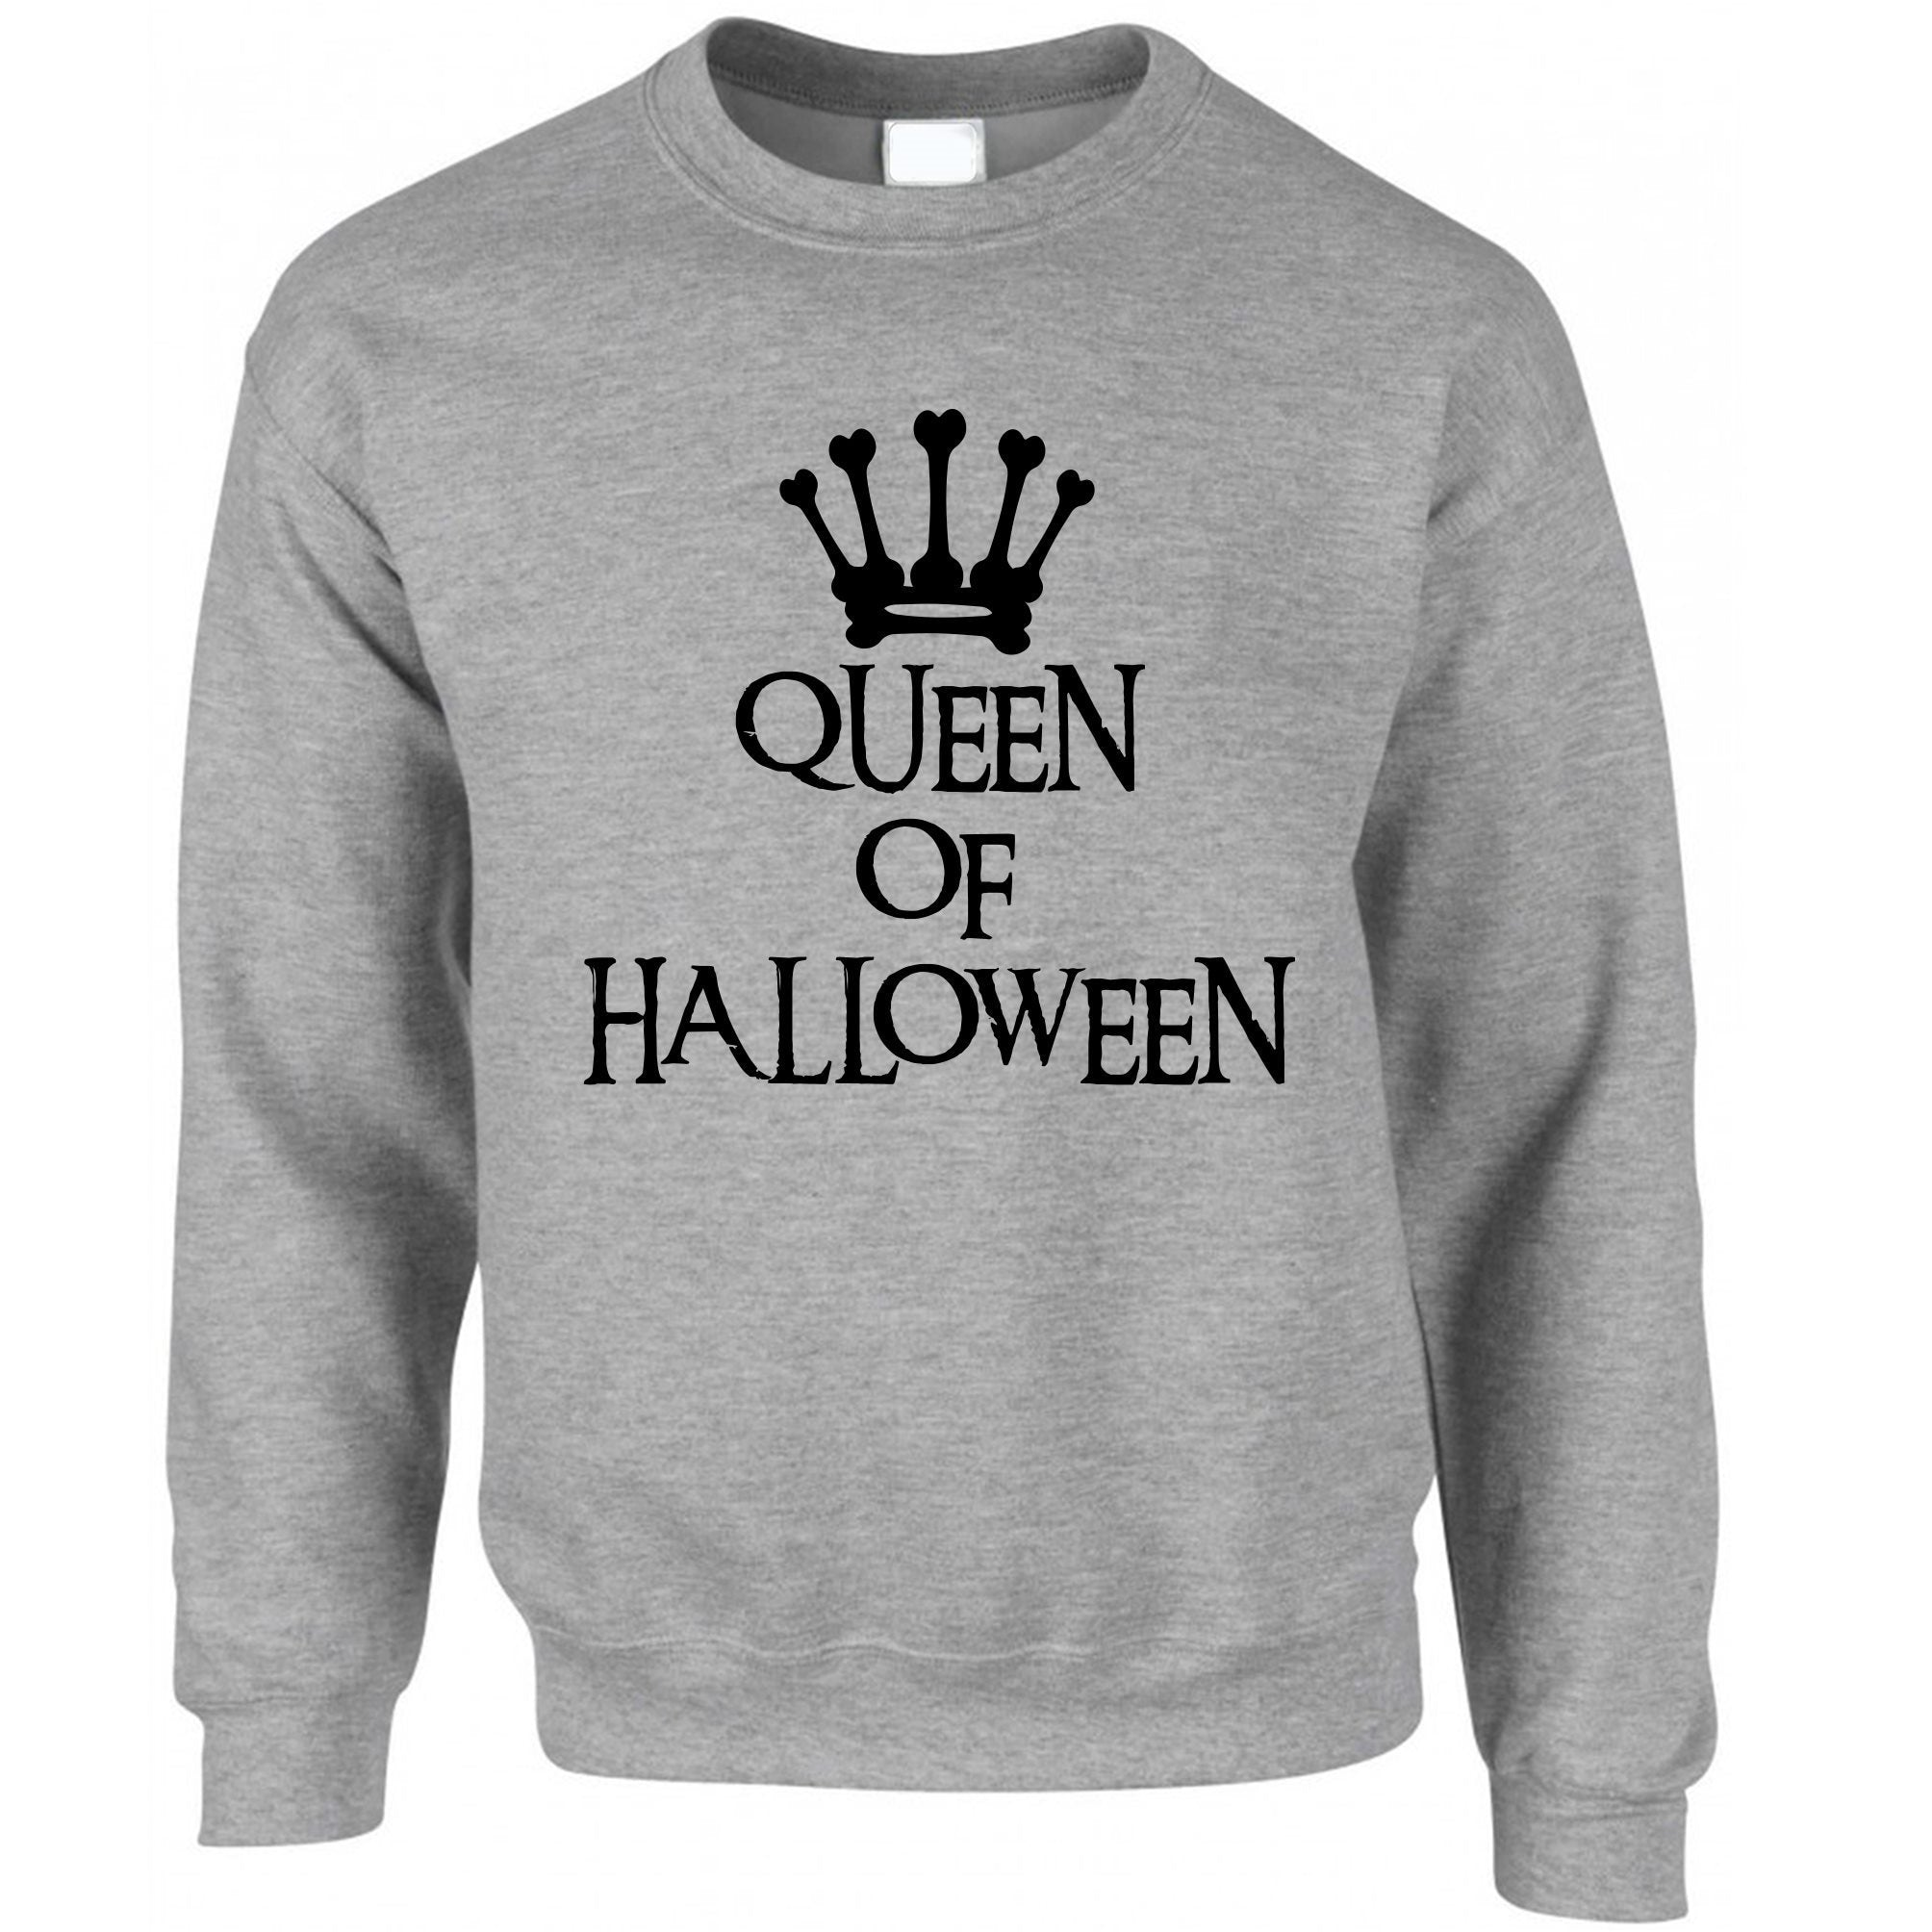 Novelty Spooky Jumper Queen Of Halloween Crown Sweatshirt Sweater